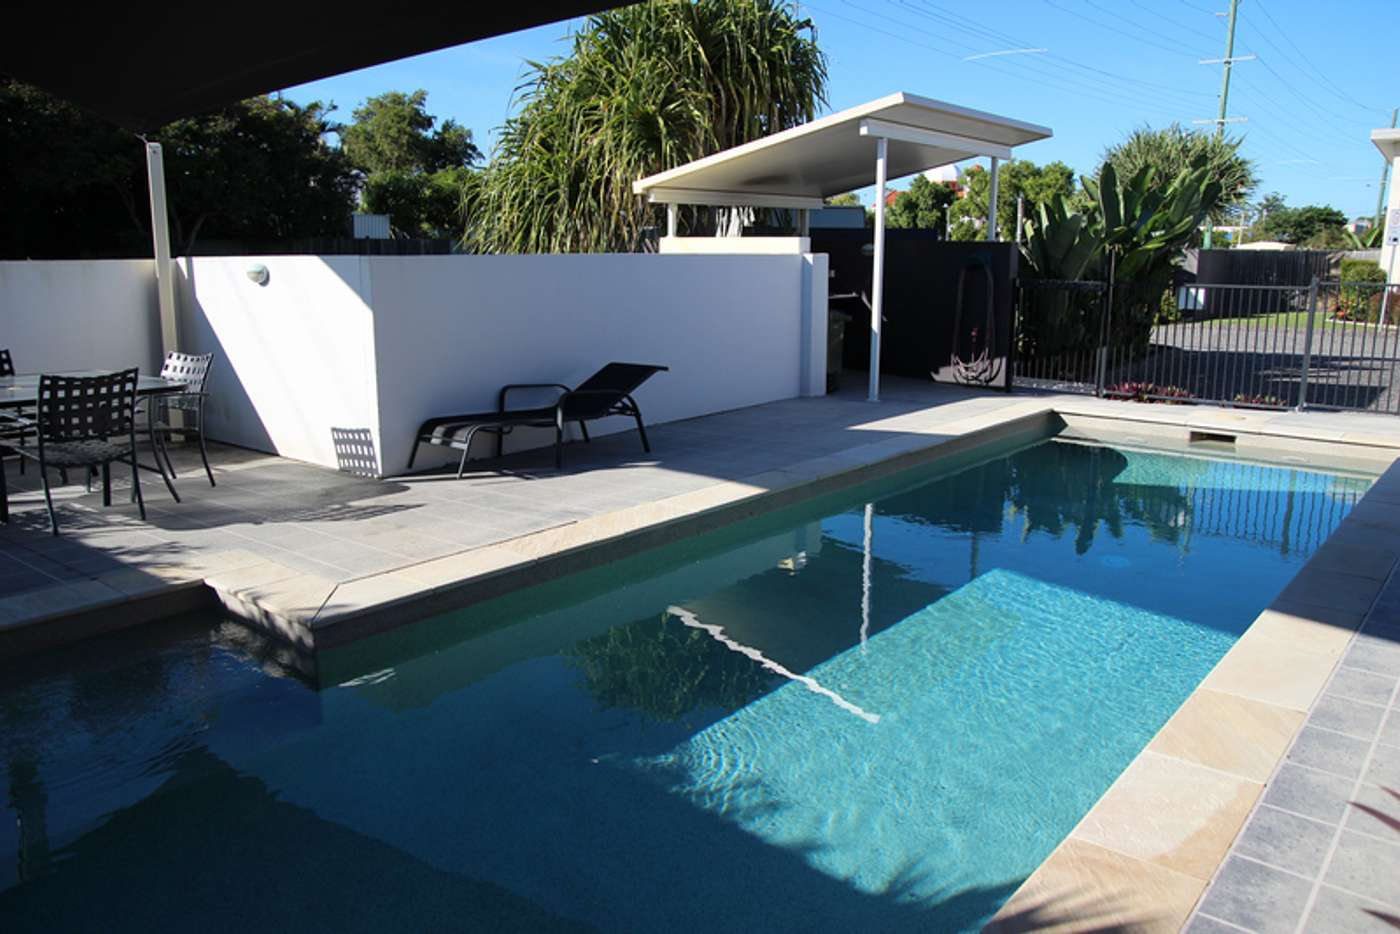 Main view of Homely townhouse listing, 82/36 Heathwood Street, Taigum QLD 4018